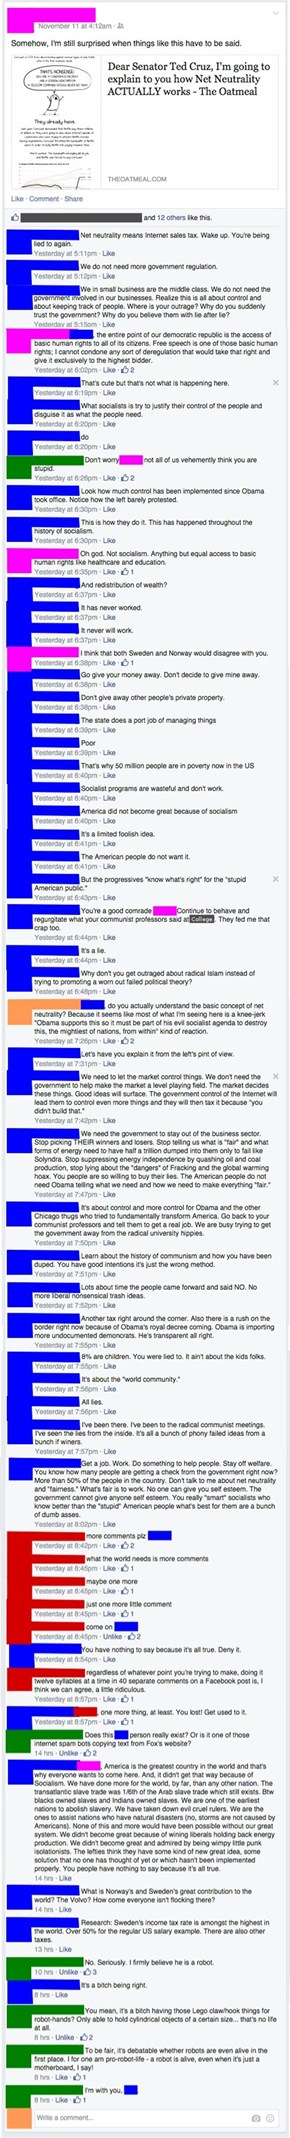 A Really Long, Drawn-Out Political Conversation? Facebook is the Perfect Place!